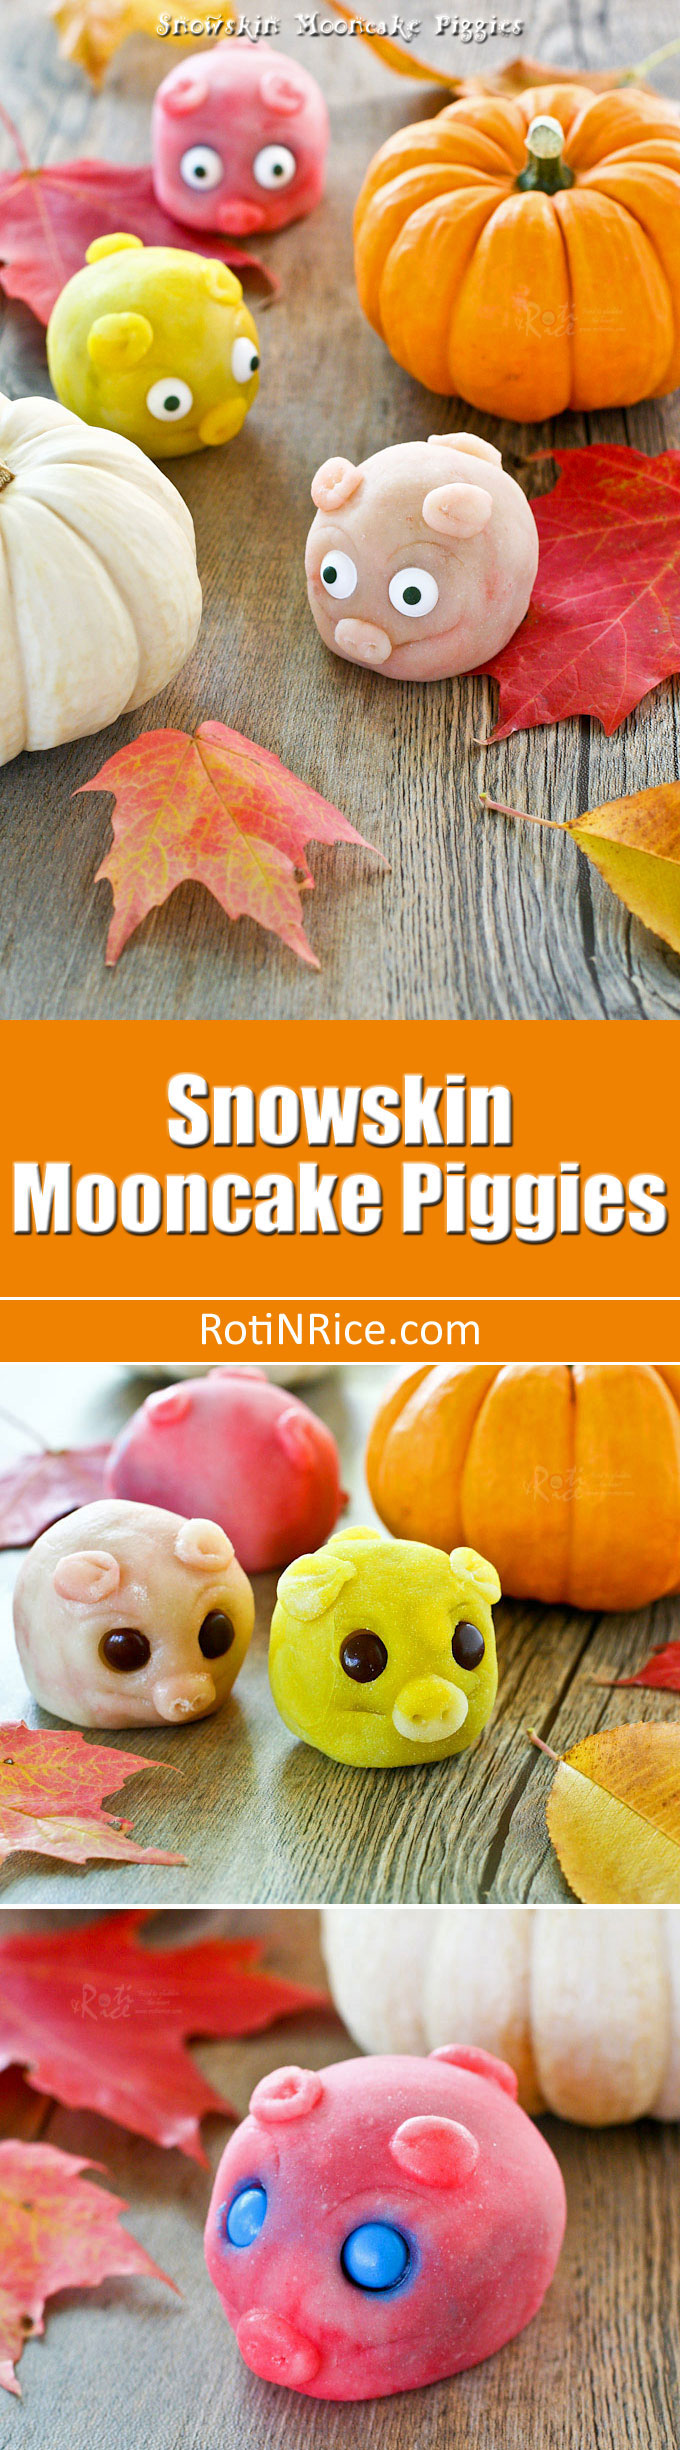 Delightful gluten free Snowskin Mooncake Piggies with lotus and red bean paste filling for the Mid-Autumn or Mooncake Festival. | RotiNRice.com